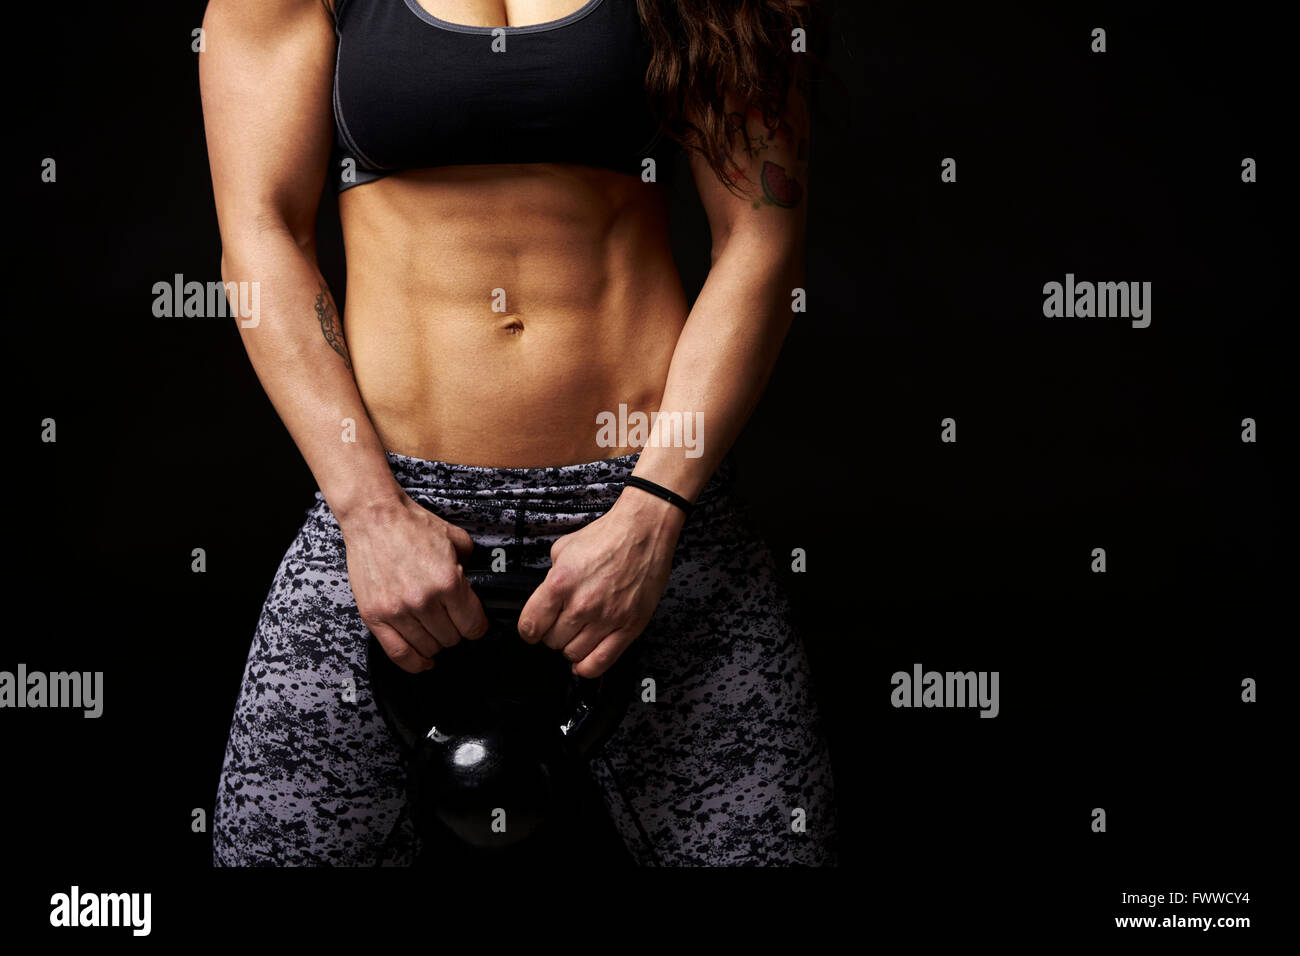 La mi-section de culture jeune femme musculaire kettlebell de levage Photo Stock